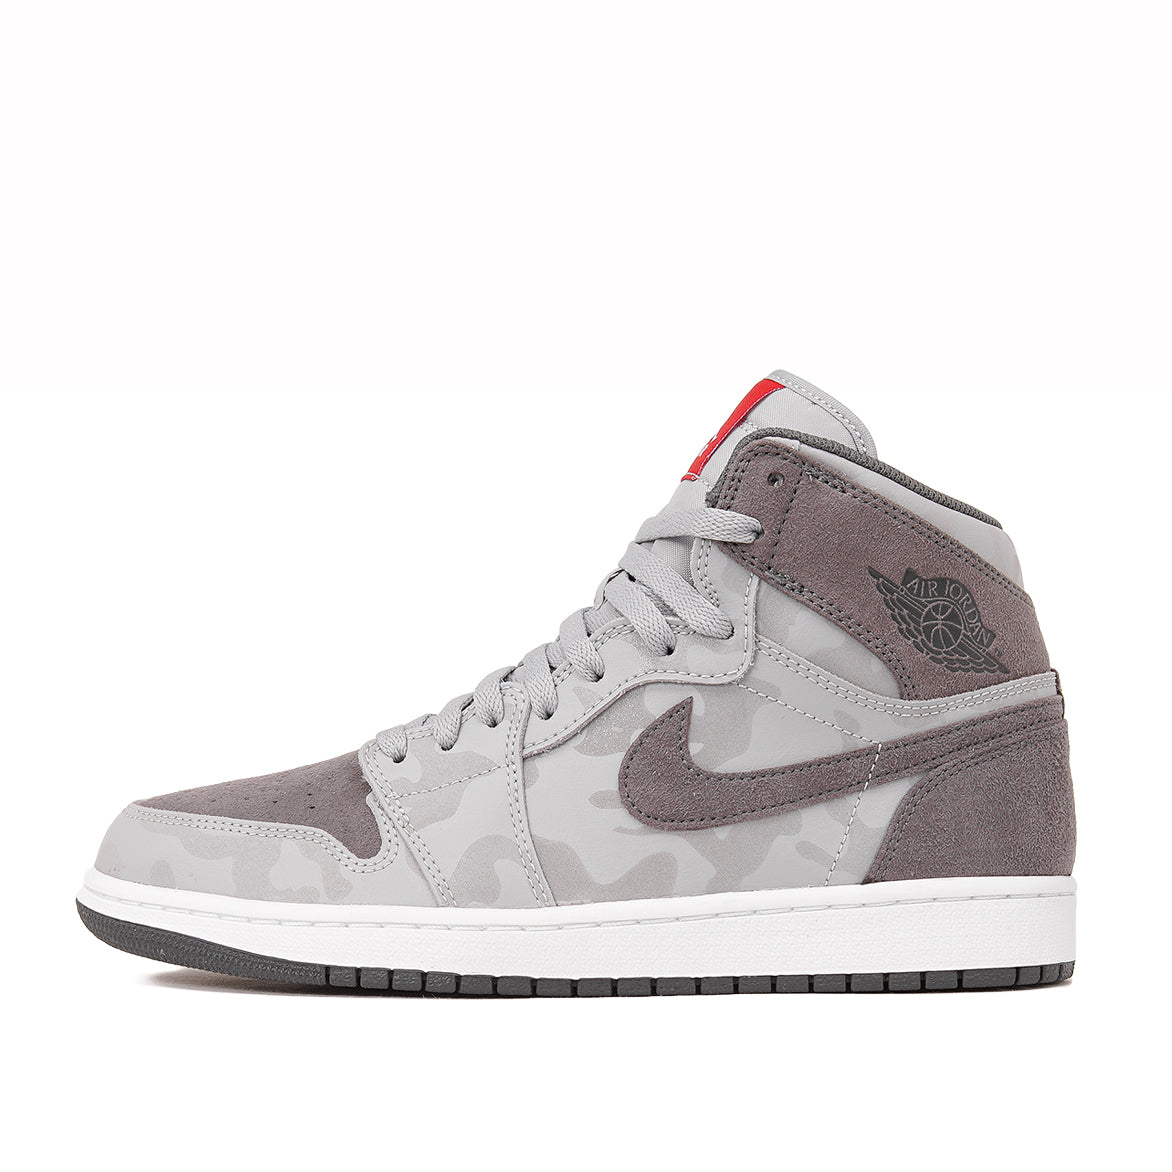 e51a7237e9ce54 AIR JORDAN 1 RETRO HIGH PREMIUM